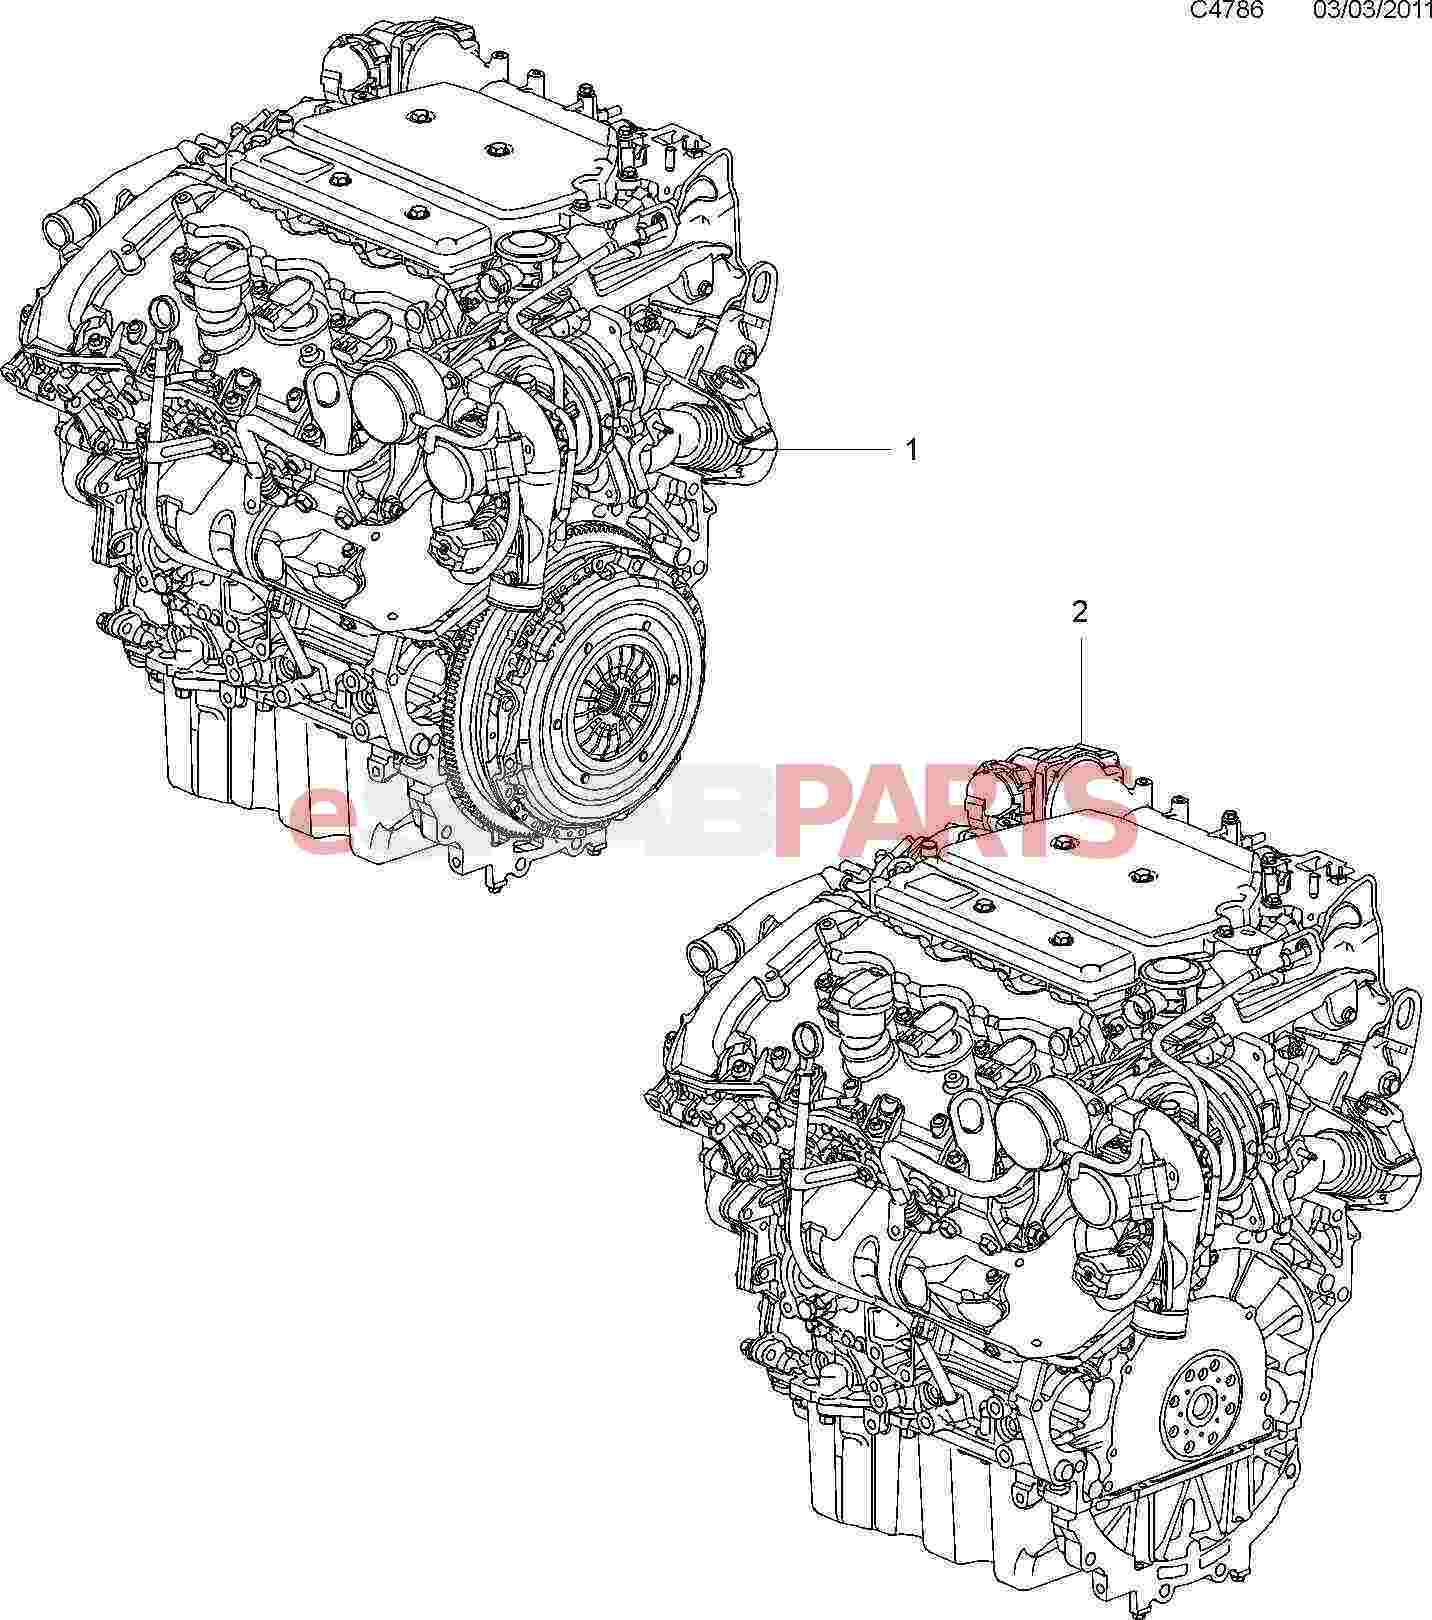 Volkswagen Jetta Engine Ps Diagram Audi A4 V6 Engine